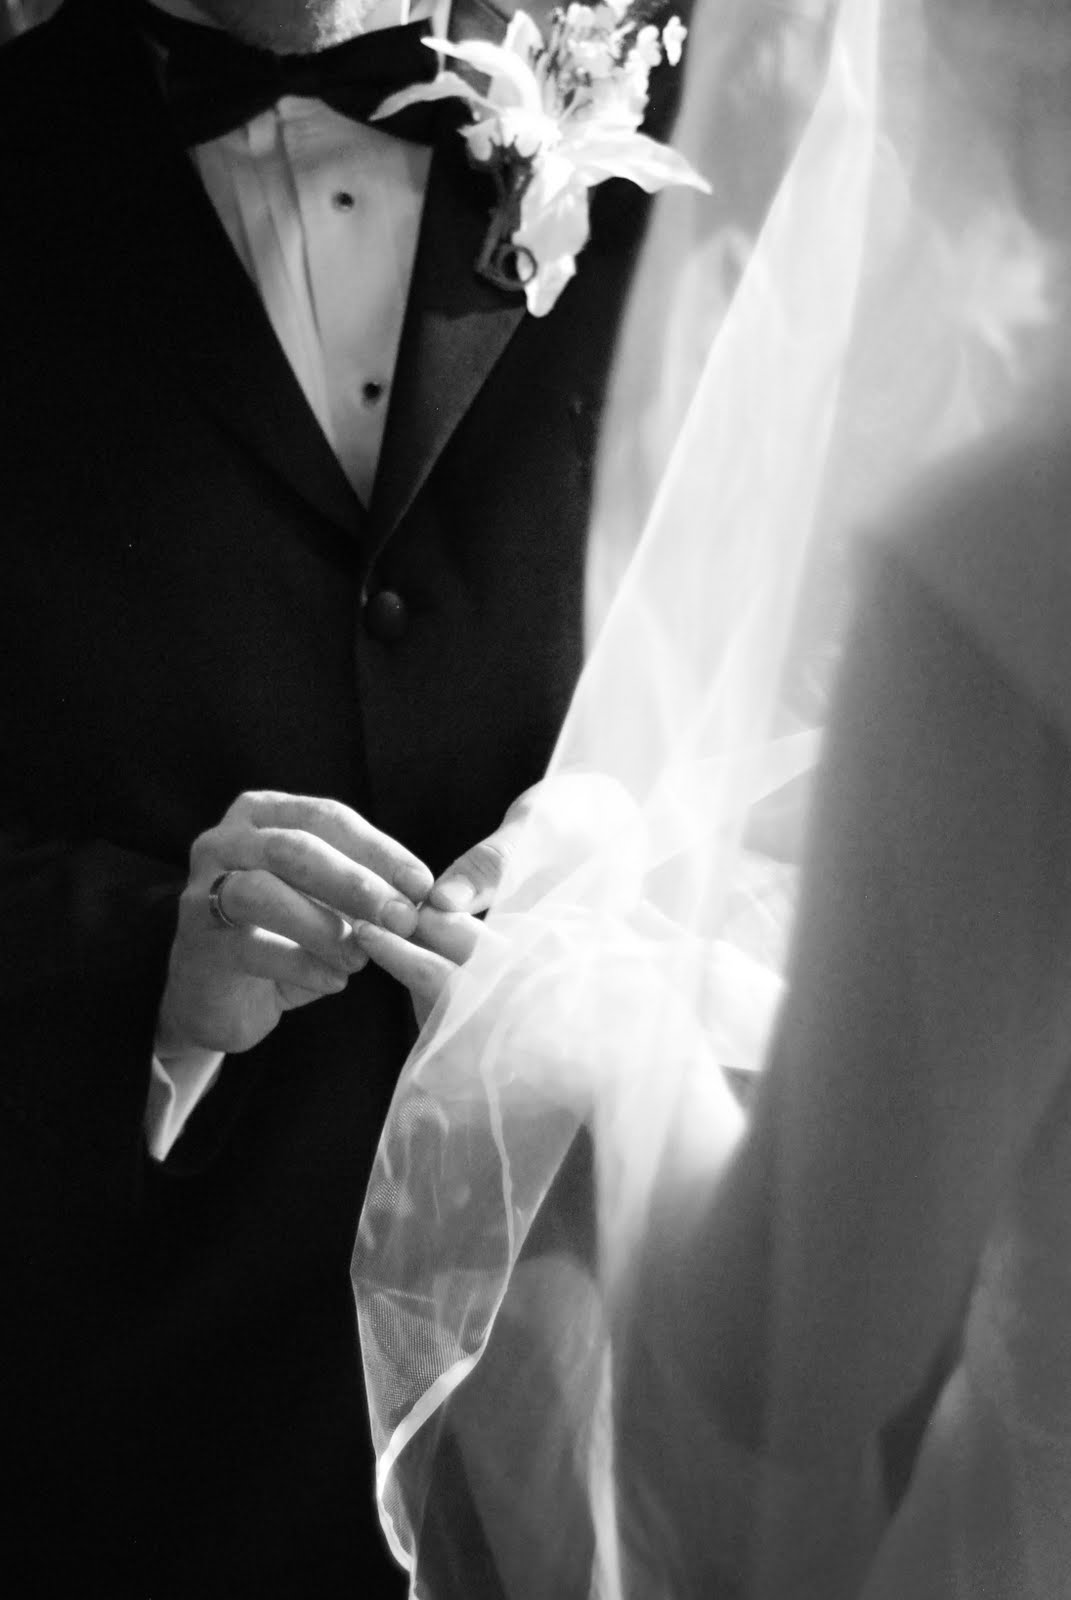 Many People Have Commented About The Vows Grant And I Used On Our Wedding Day It Was Difficult Trying To Decide What We Wanted Say